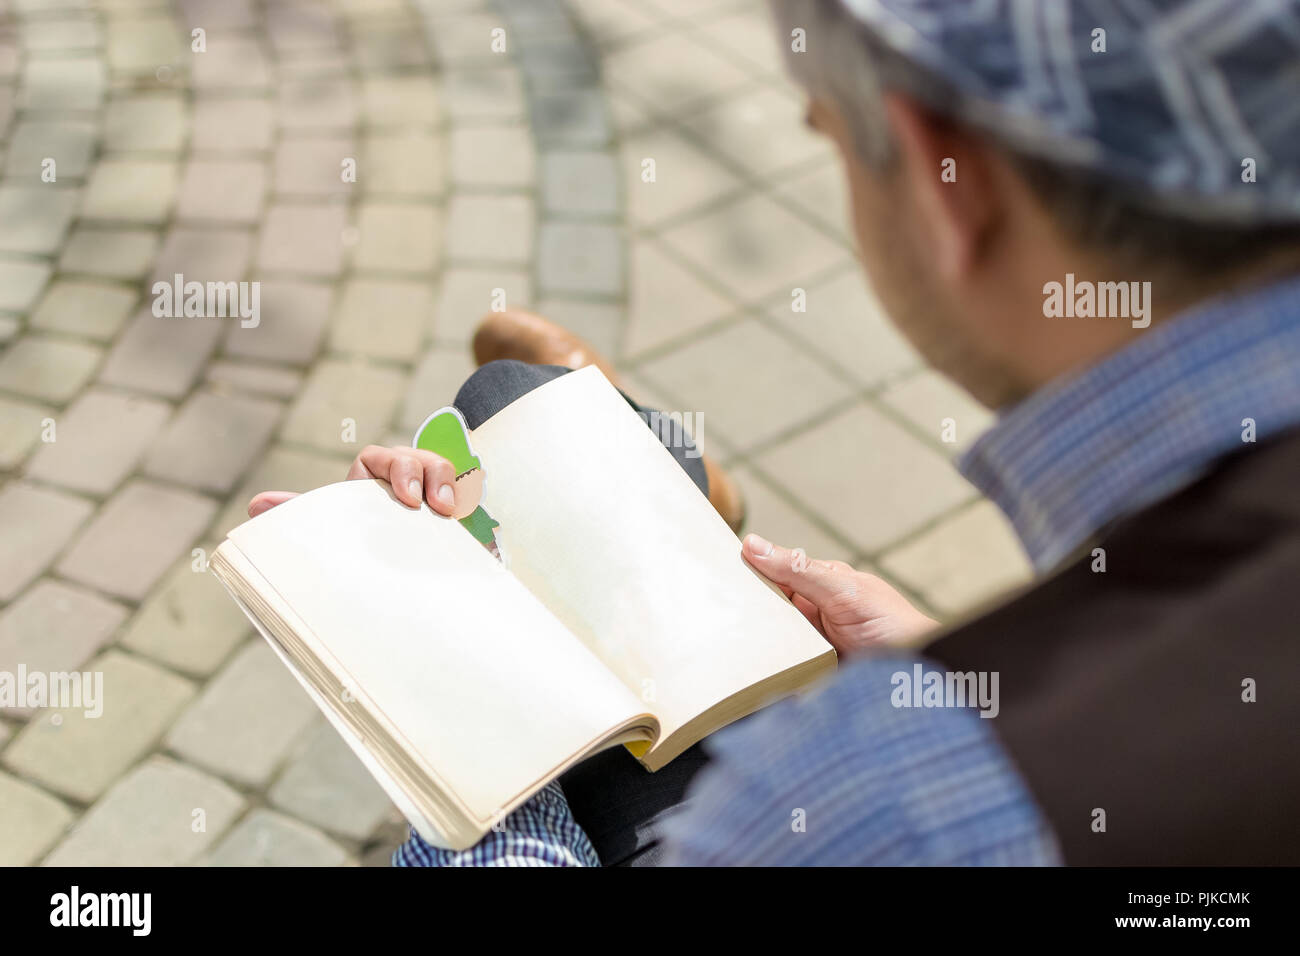 back over his shoulder to see what the man in the hat sitting legs crossed and reading a book. - Stock Image